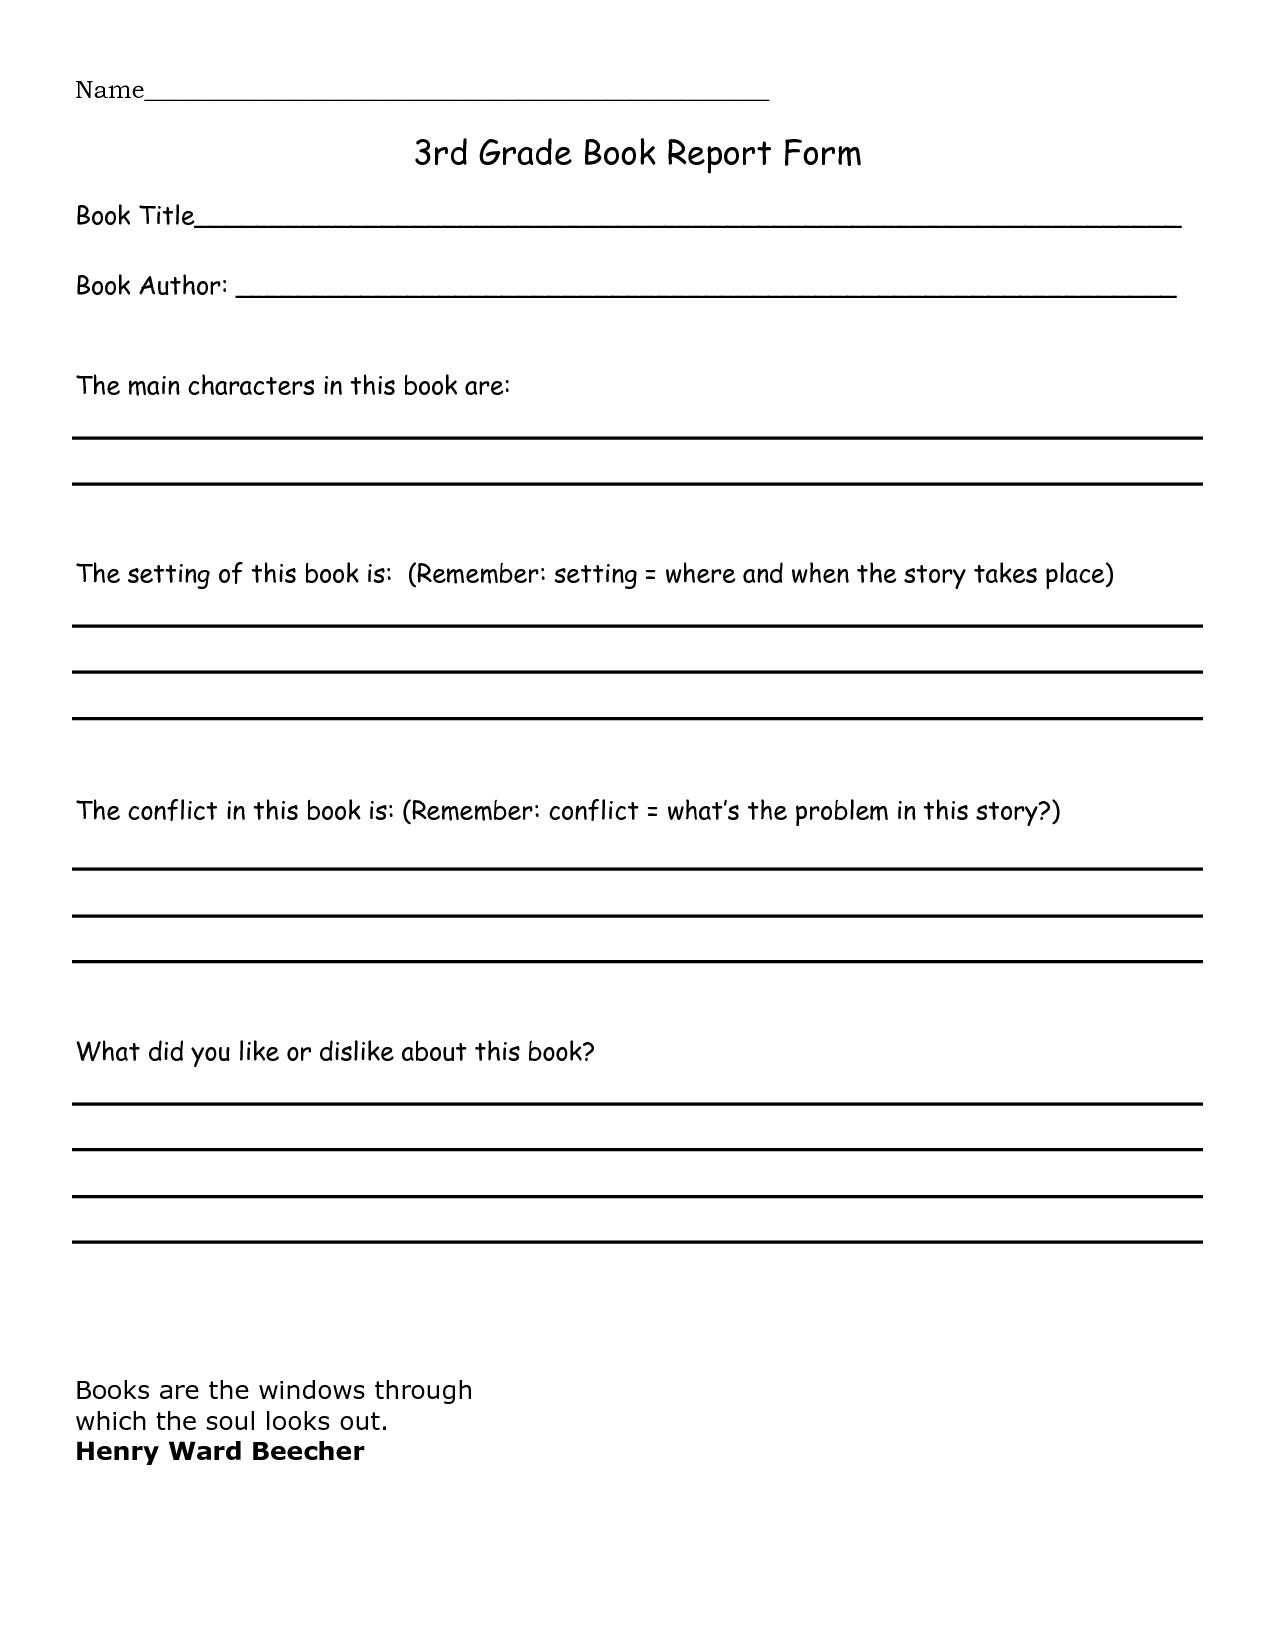 writing templates for 3rd grade - 3rd grade book report sample google search education